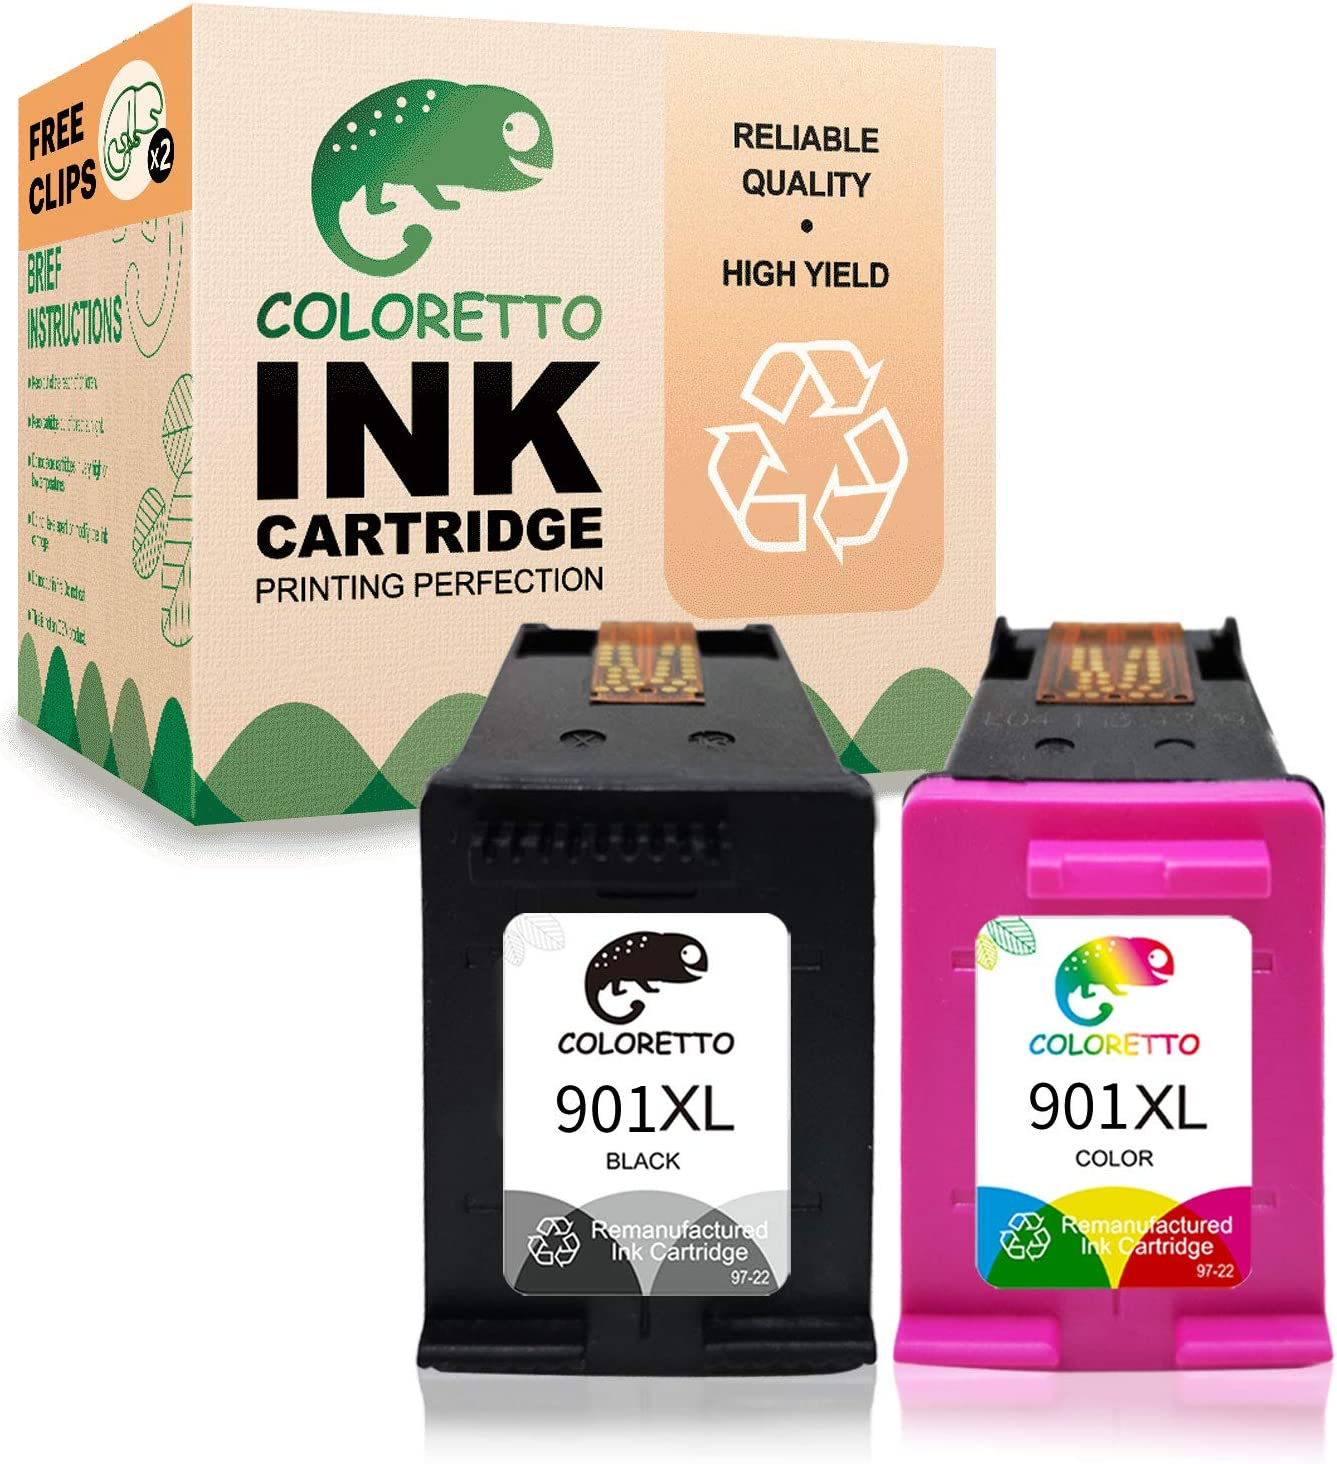 Coloretto Re-Manufactured Printer Ink Cartridge Replacement for HP 901 901XL 901 XL,Ink Level Display for HP Officejet 4500 G510a G510g G510n J4500 J4524 J4624 J4660 J468(1 Black+ 1 Tri-Color)